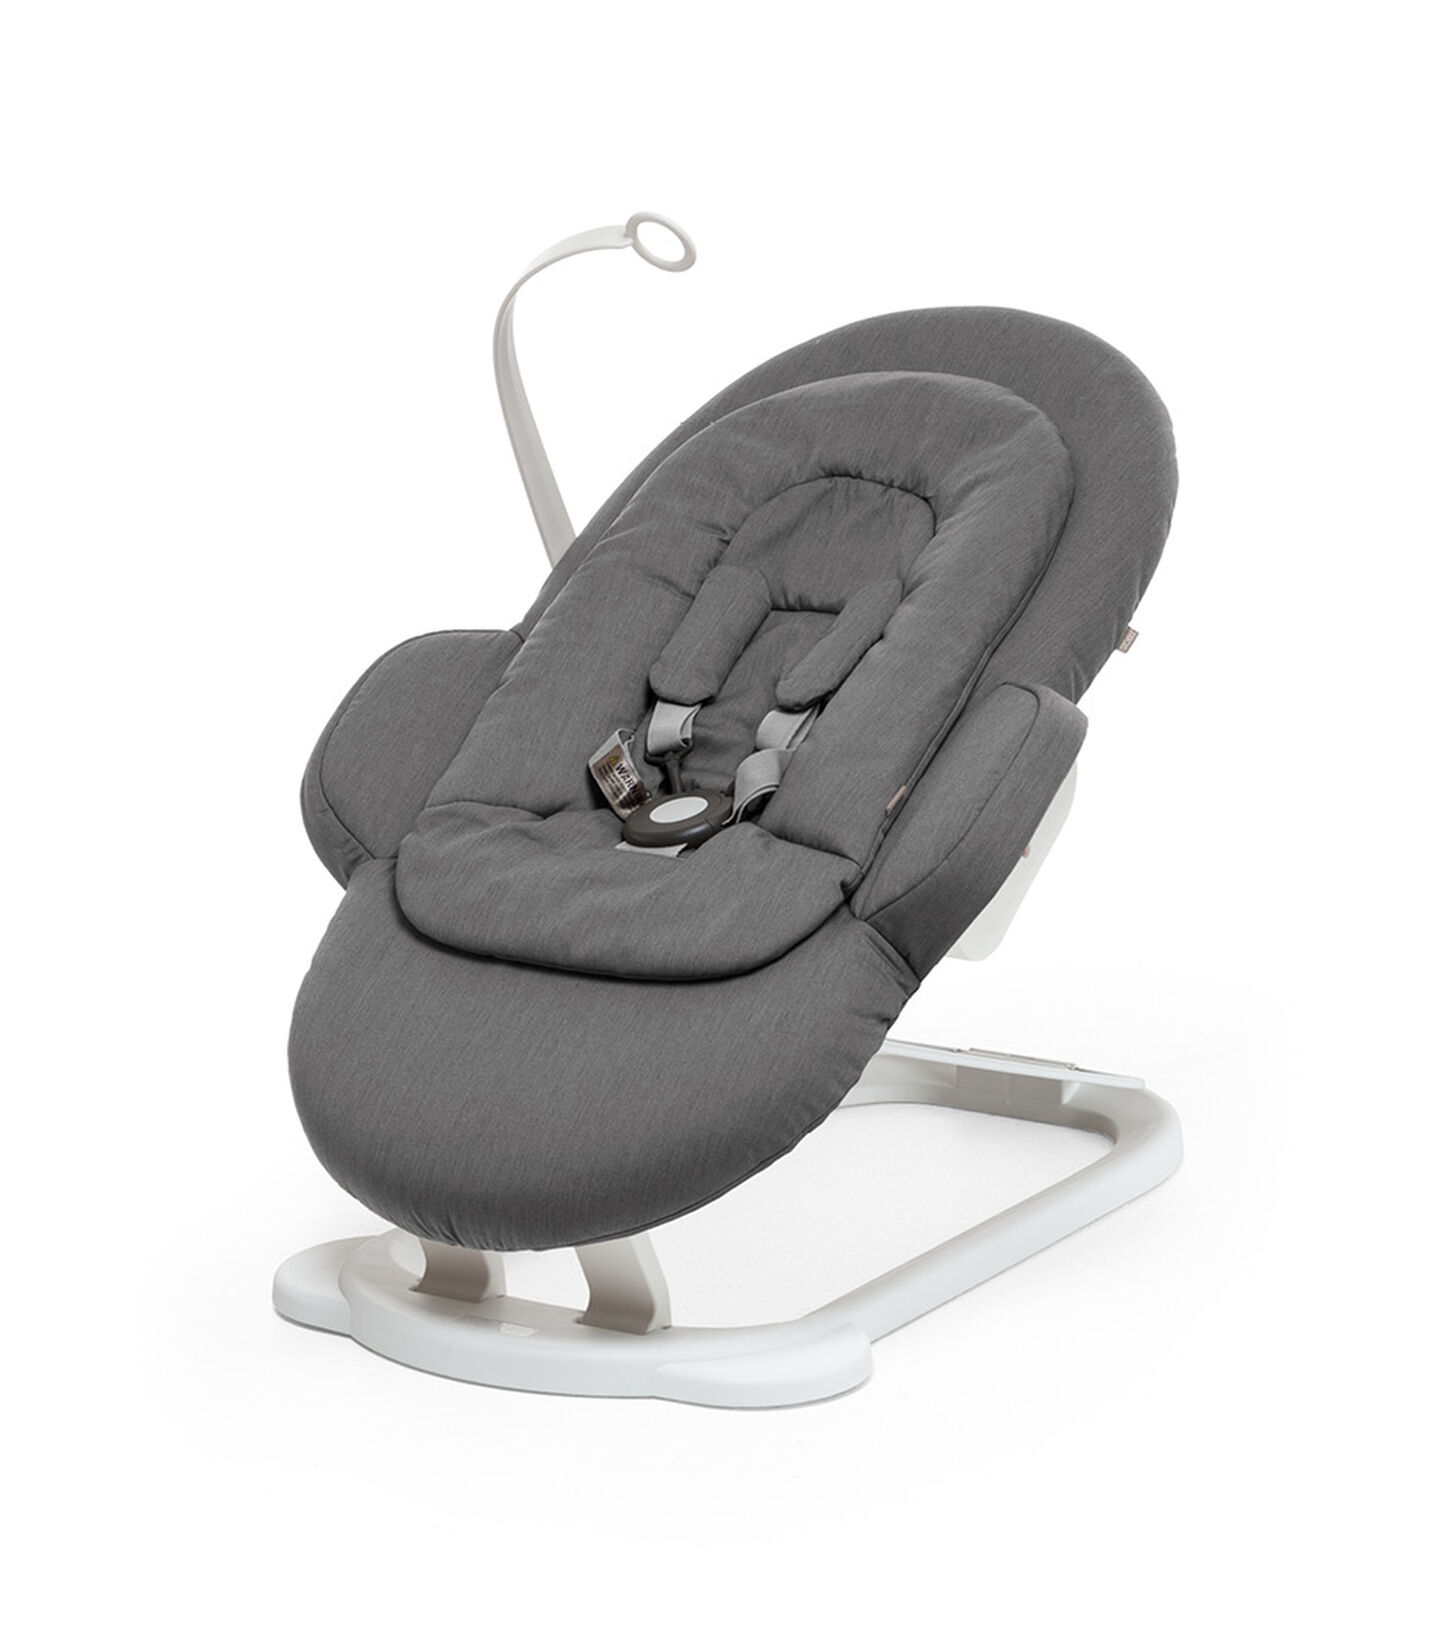 Stokke® Steps Bouncer in Deep Grey with White Base and Toy Hanger. view 1